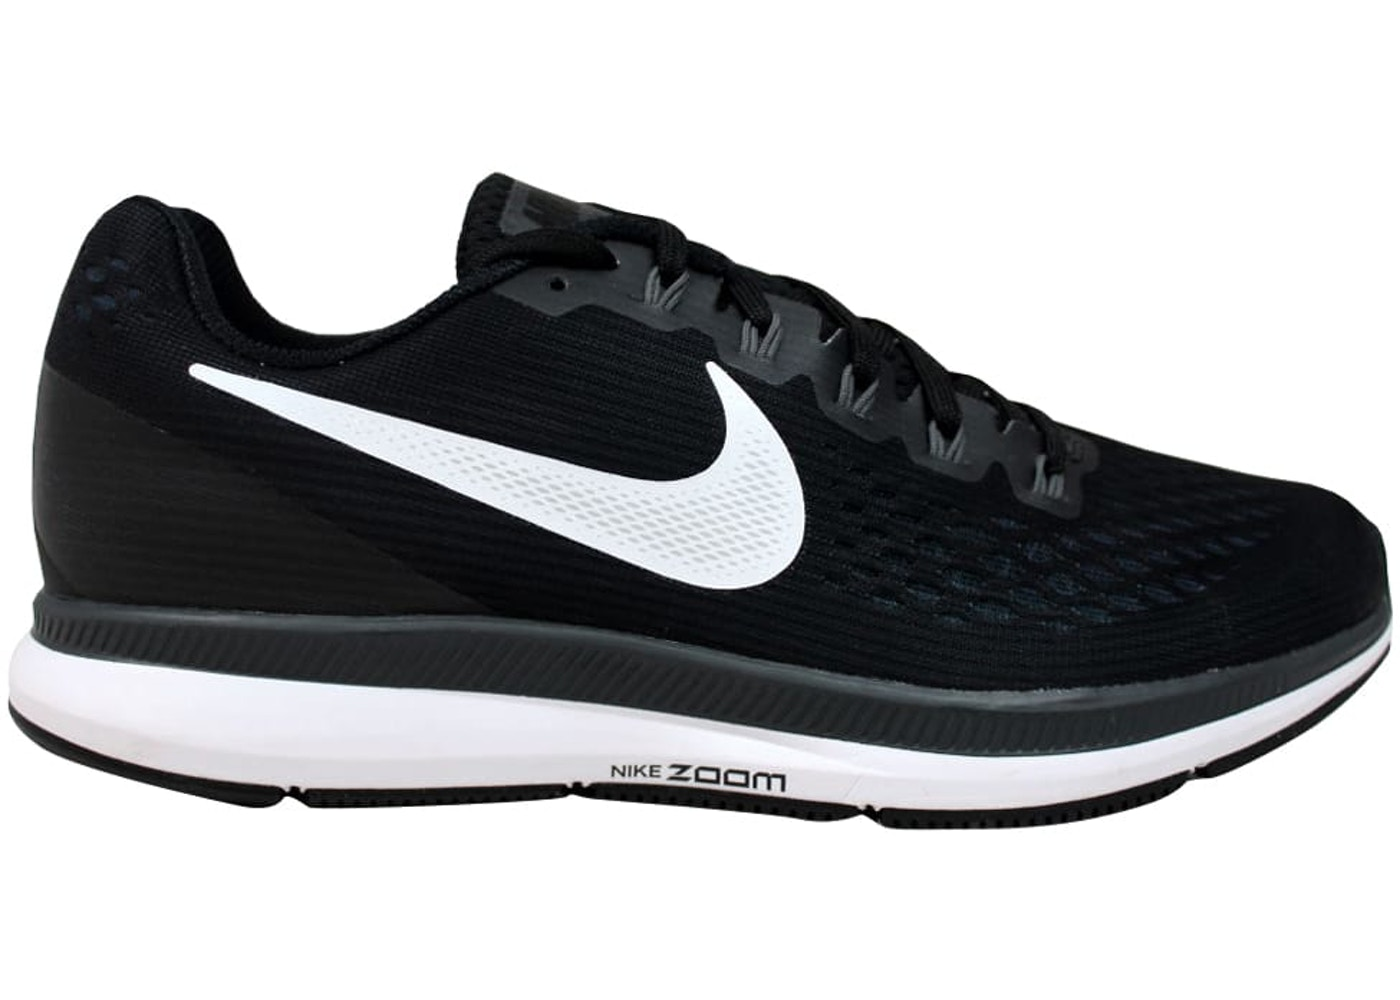 promo code 61527 66c7c Nike Air Zoom Pegasus 34 Black/White-Dark Grey